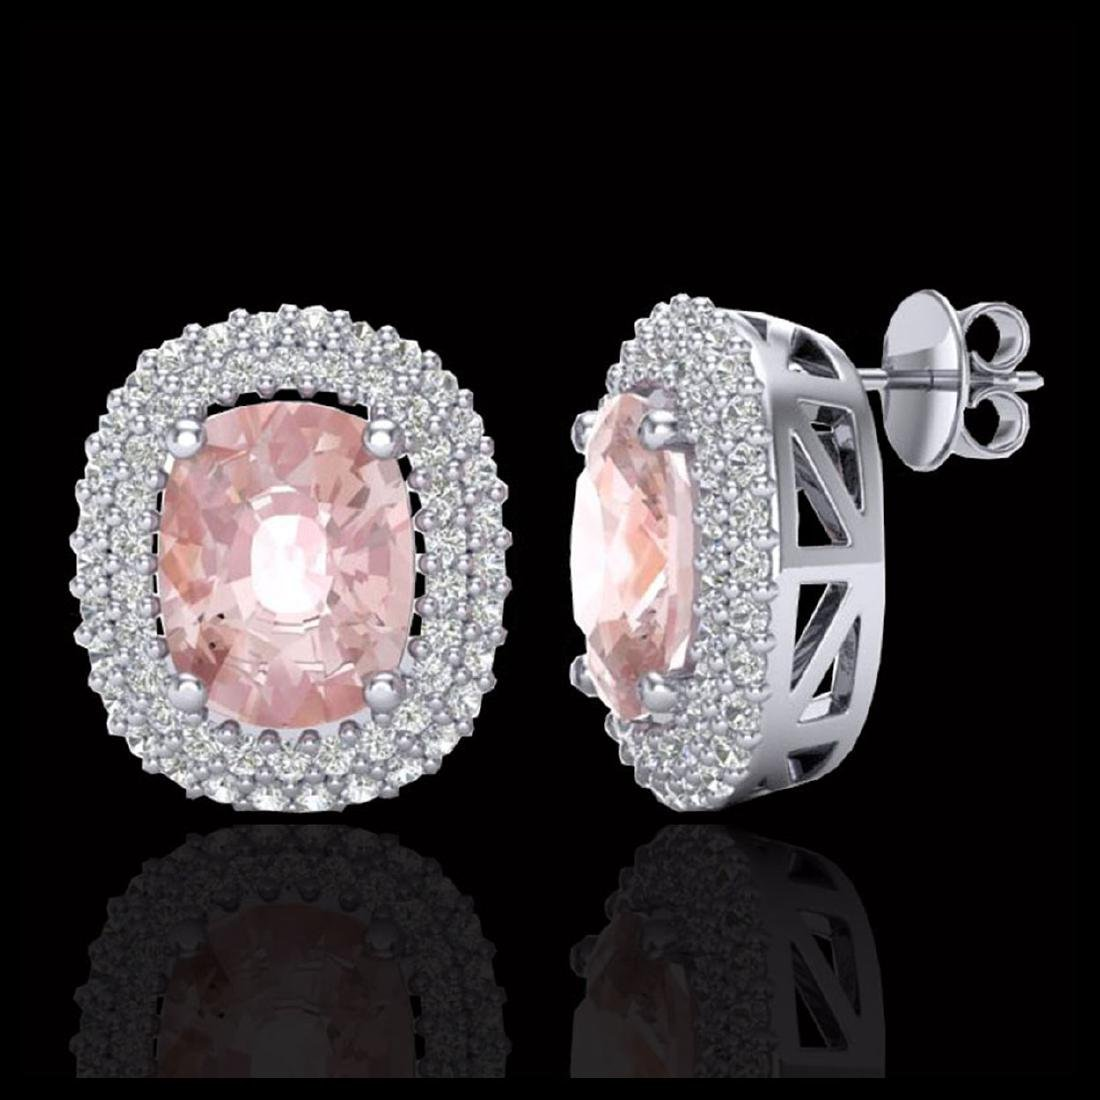 5.50 CTW Morganite & Micro Pave VS/SI Diamond Halo - 2